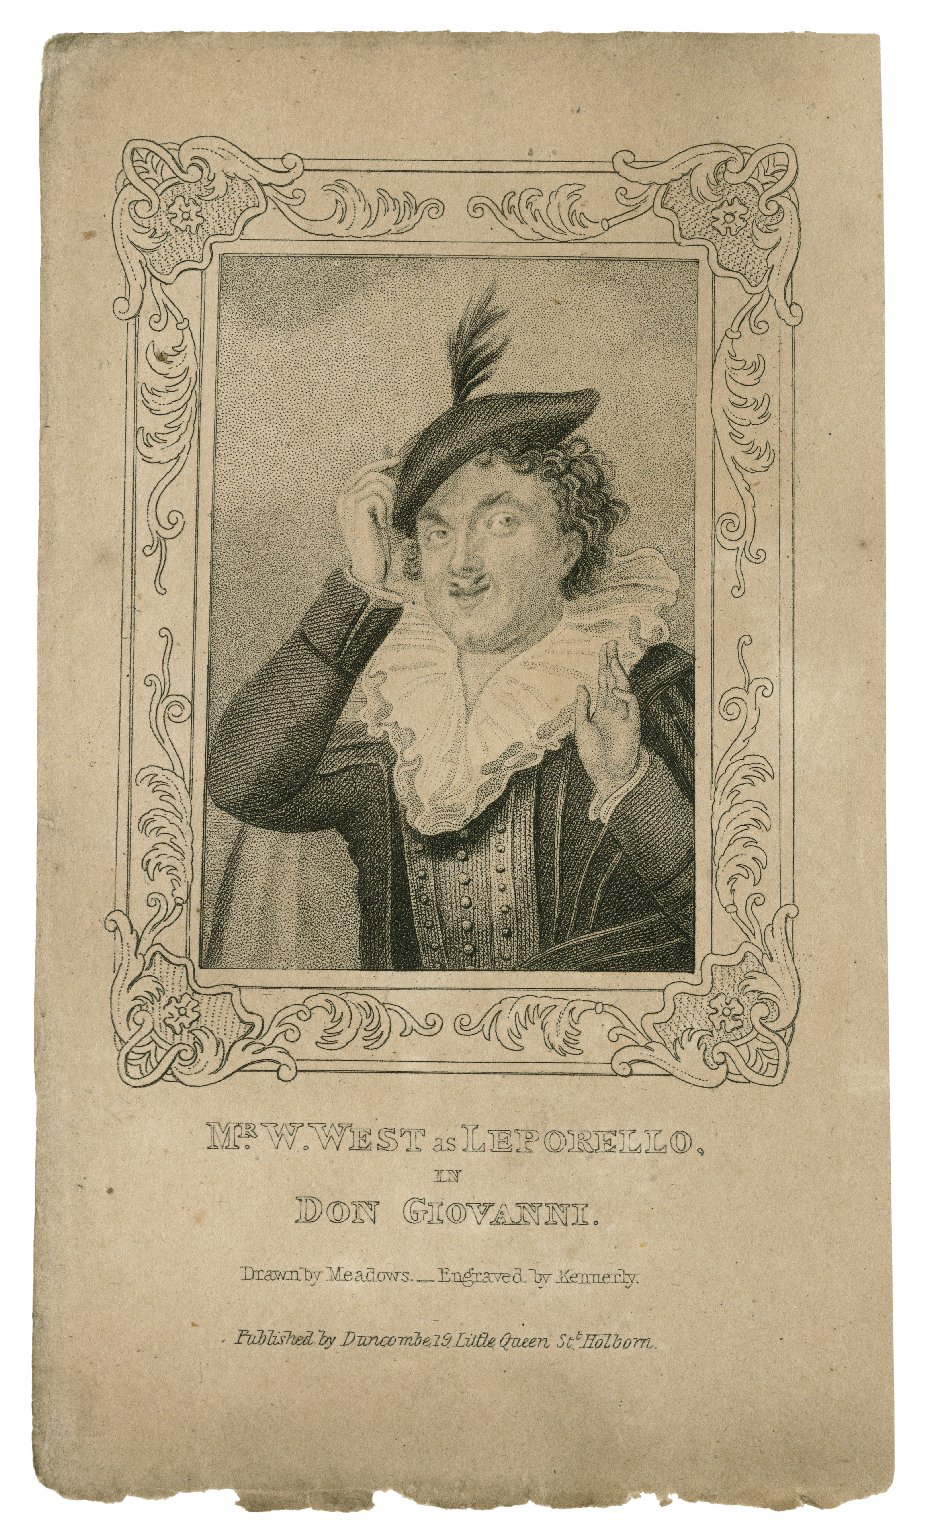 Mr. W. West as Leporello in Don Giovanni [by Mozart] [graphic] / drawn by Meadows ; engraved by Kennerly.